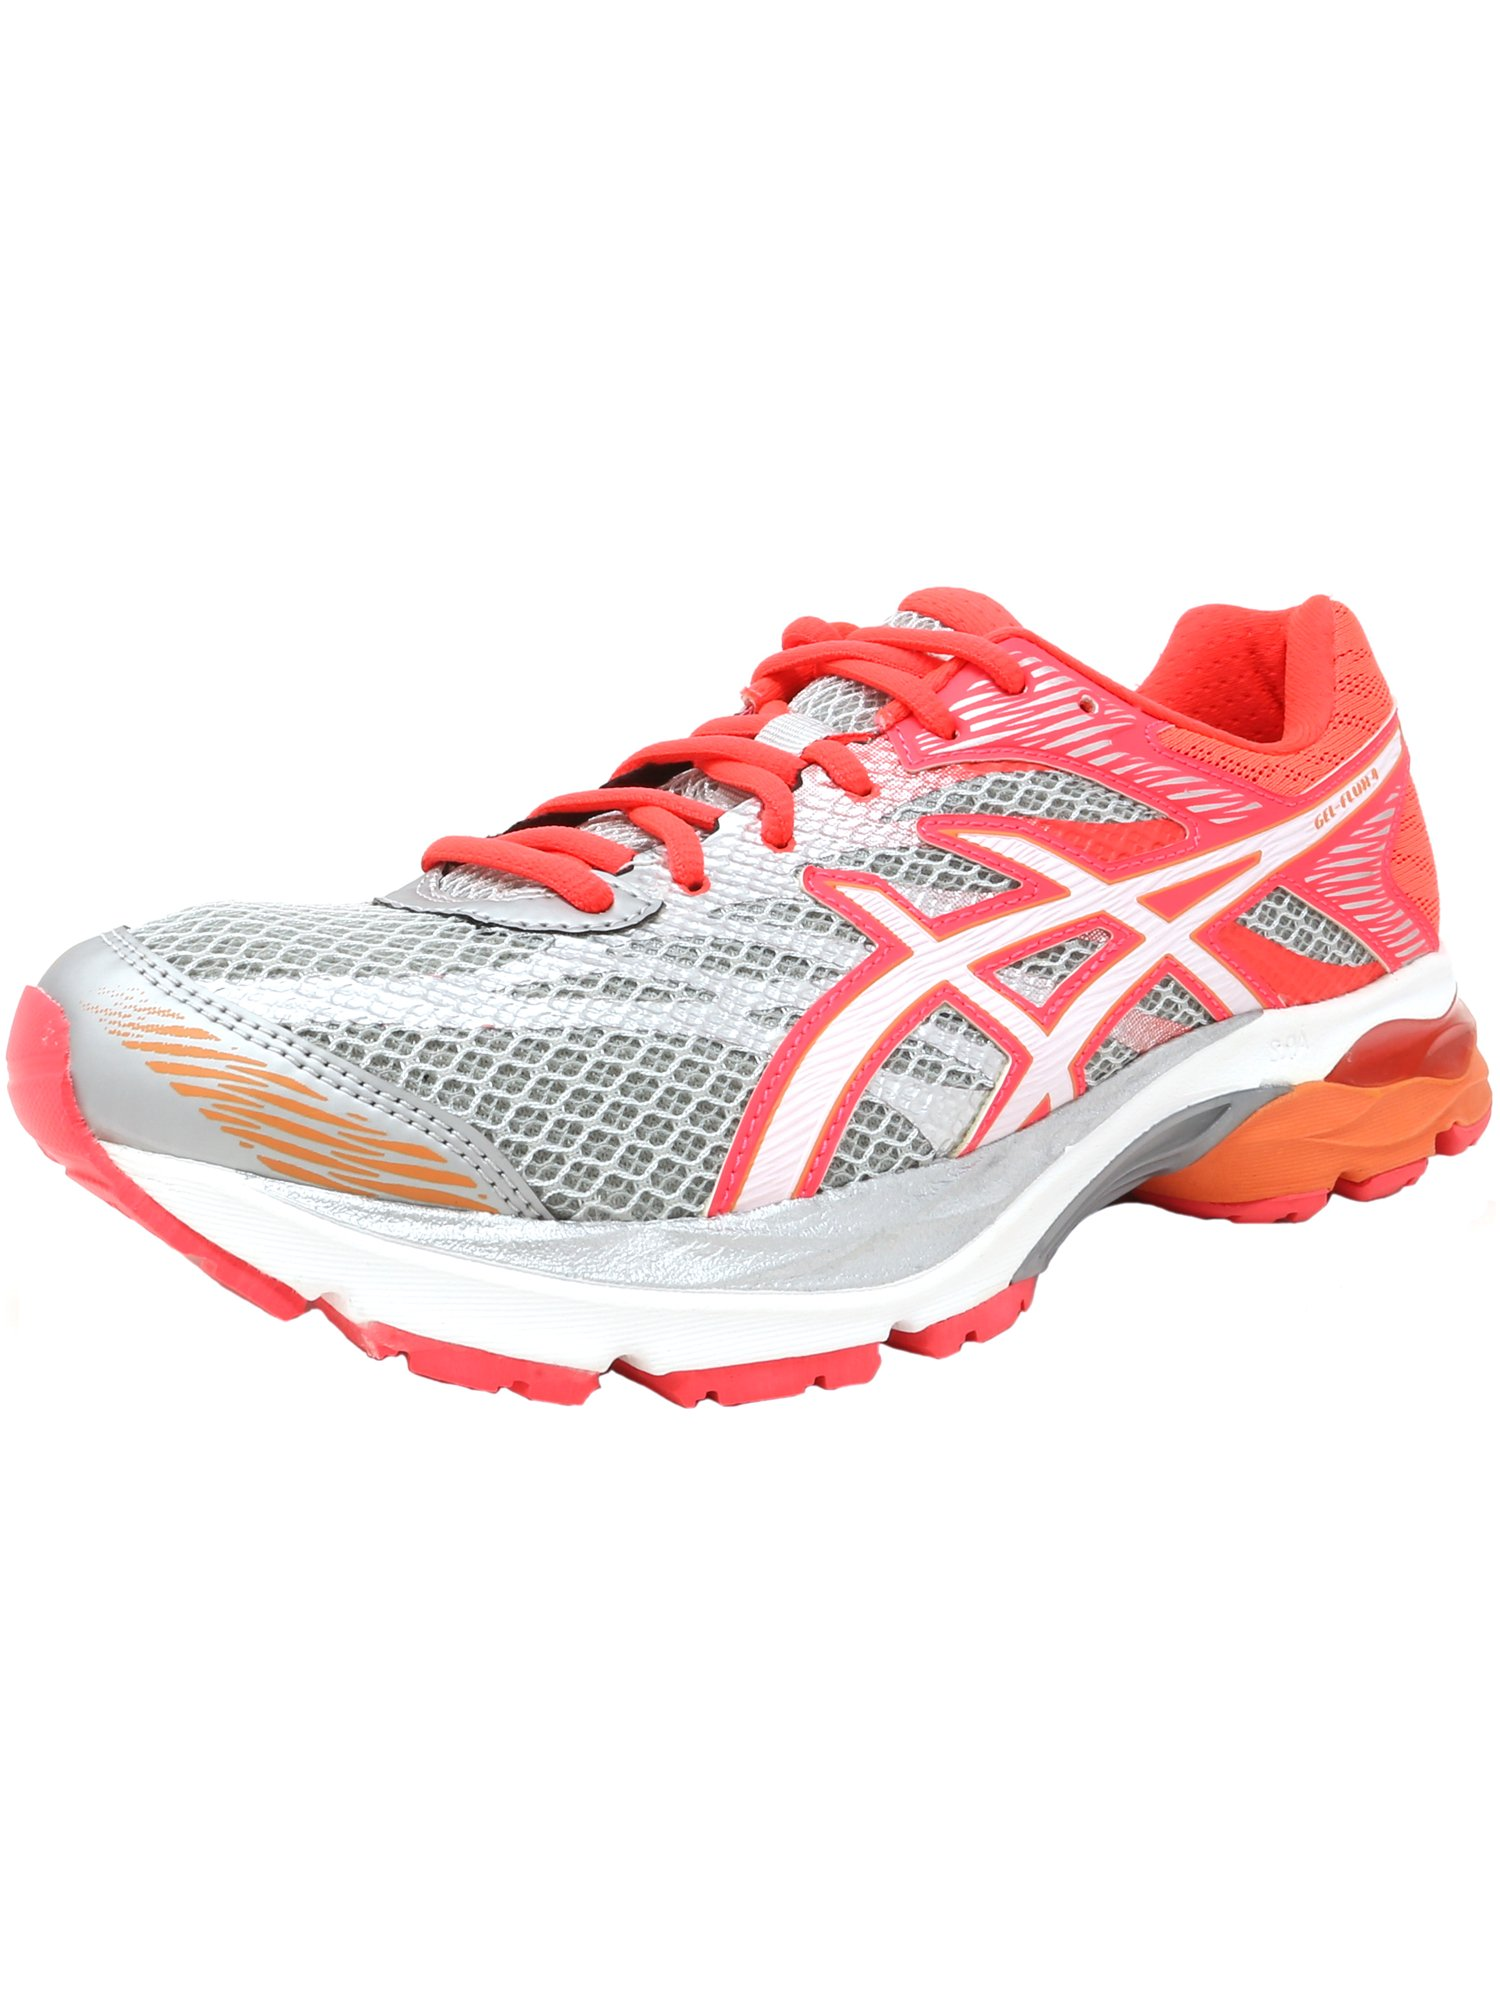 Asics Women's Gel-Flux 4 White / Snow Flash Coral Ankle-High Mesh Running Shoe - 9M